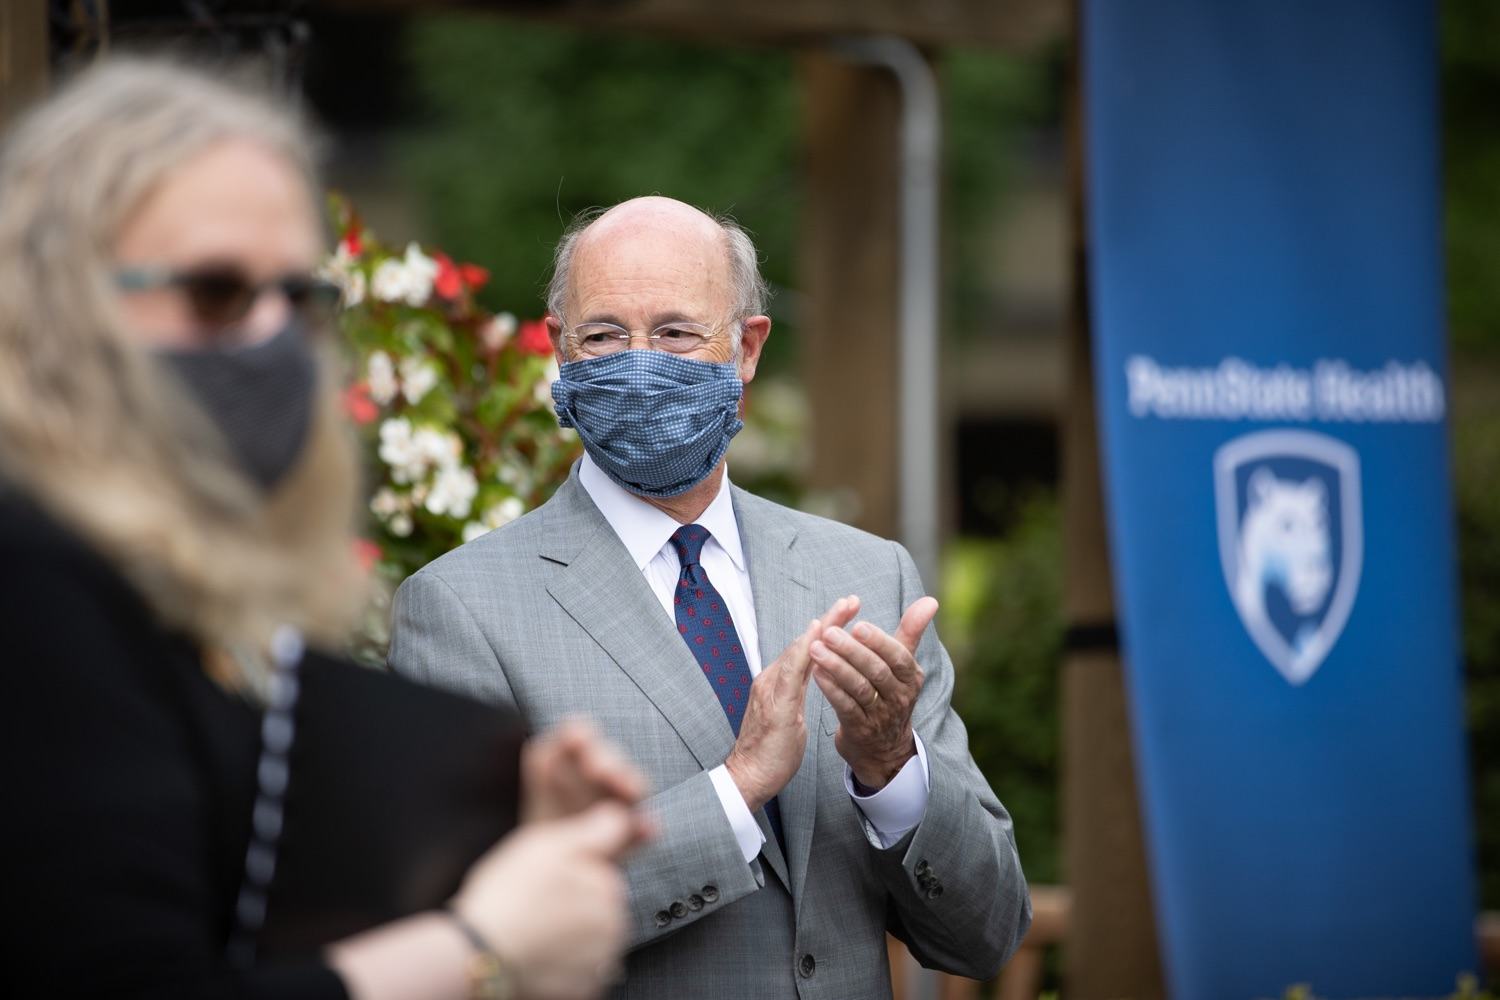 """<a href=""""https://filesource.wostreaming.net/commonwealthofpa/photo/18093_gov-healthcare_workers_dz_10.jpg"""" target=""""_blank"""">⇣Download Photo<br></a>Pennsylvania Governor Tom Wolf listening to speakers during his visit to Milton S. Hershey Medical Center.  As the commonwealth continues its measured, phased reopening and COVID-19 case counts continue to decline, Governor Tom Wolf visited Penn State Milton S. Hershey Medical Center today to thank staff and learn more about how the facility is handling the pandemic and preparing for a possible resurgence in the fall.  Harrisburg, PA  June 24, 2020"""